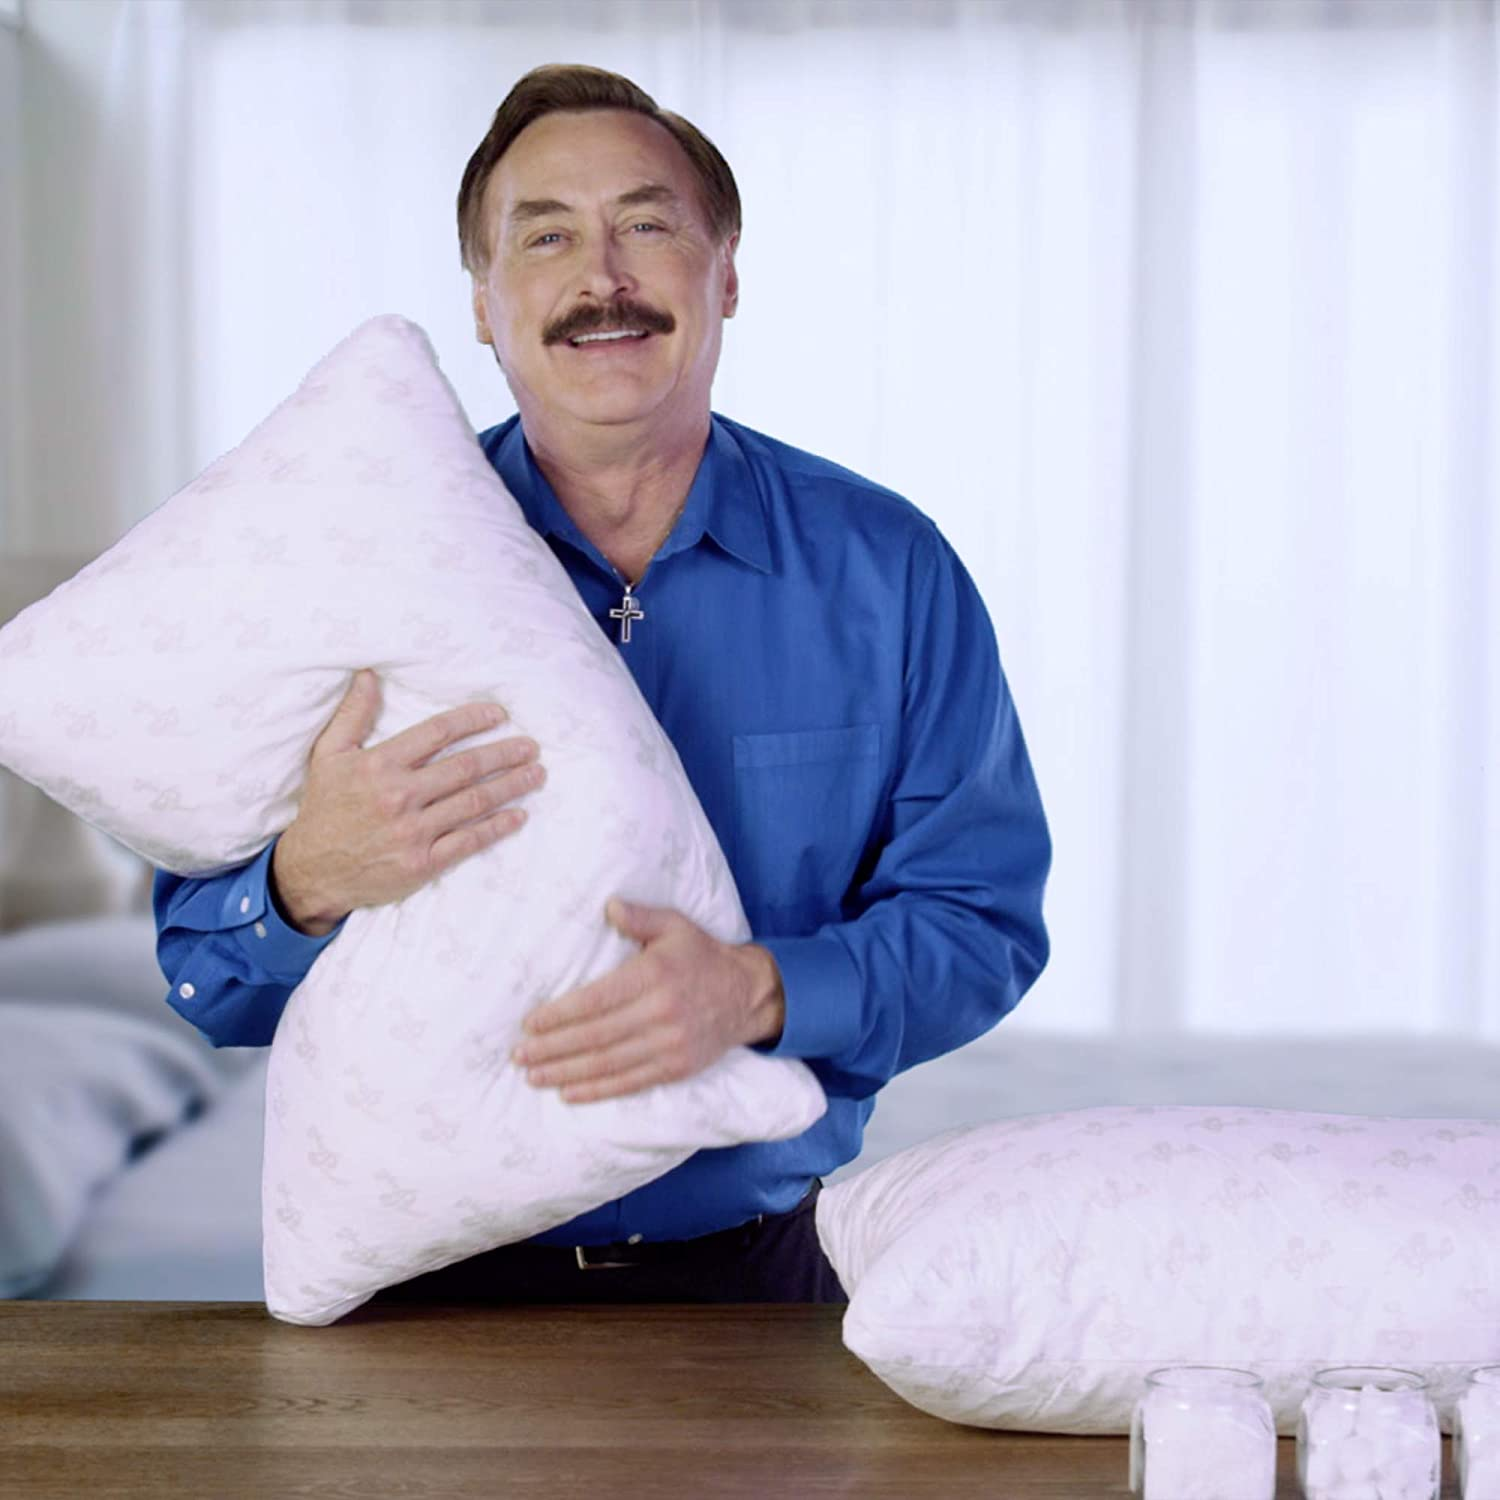 MyPillow Reviews